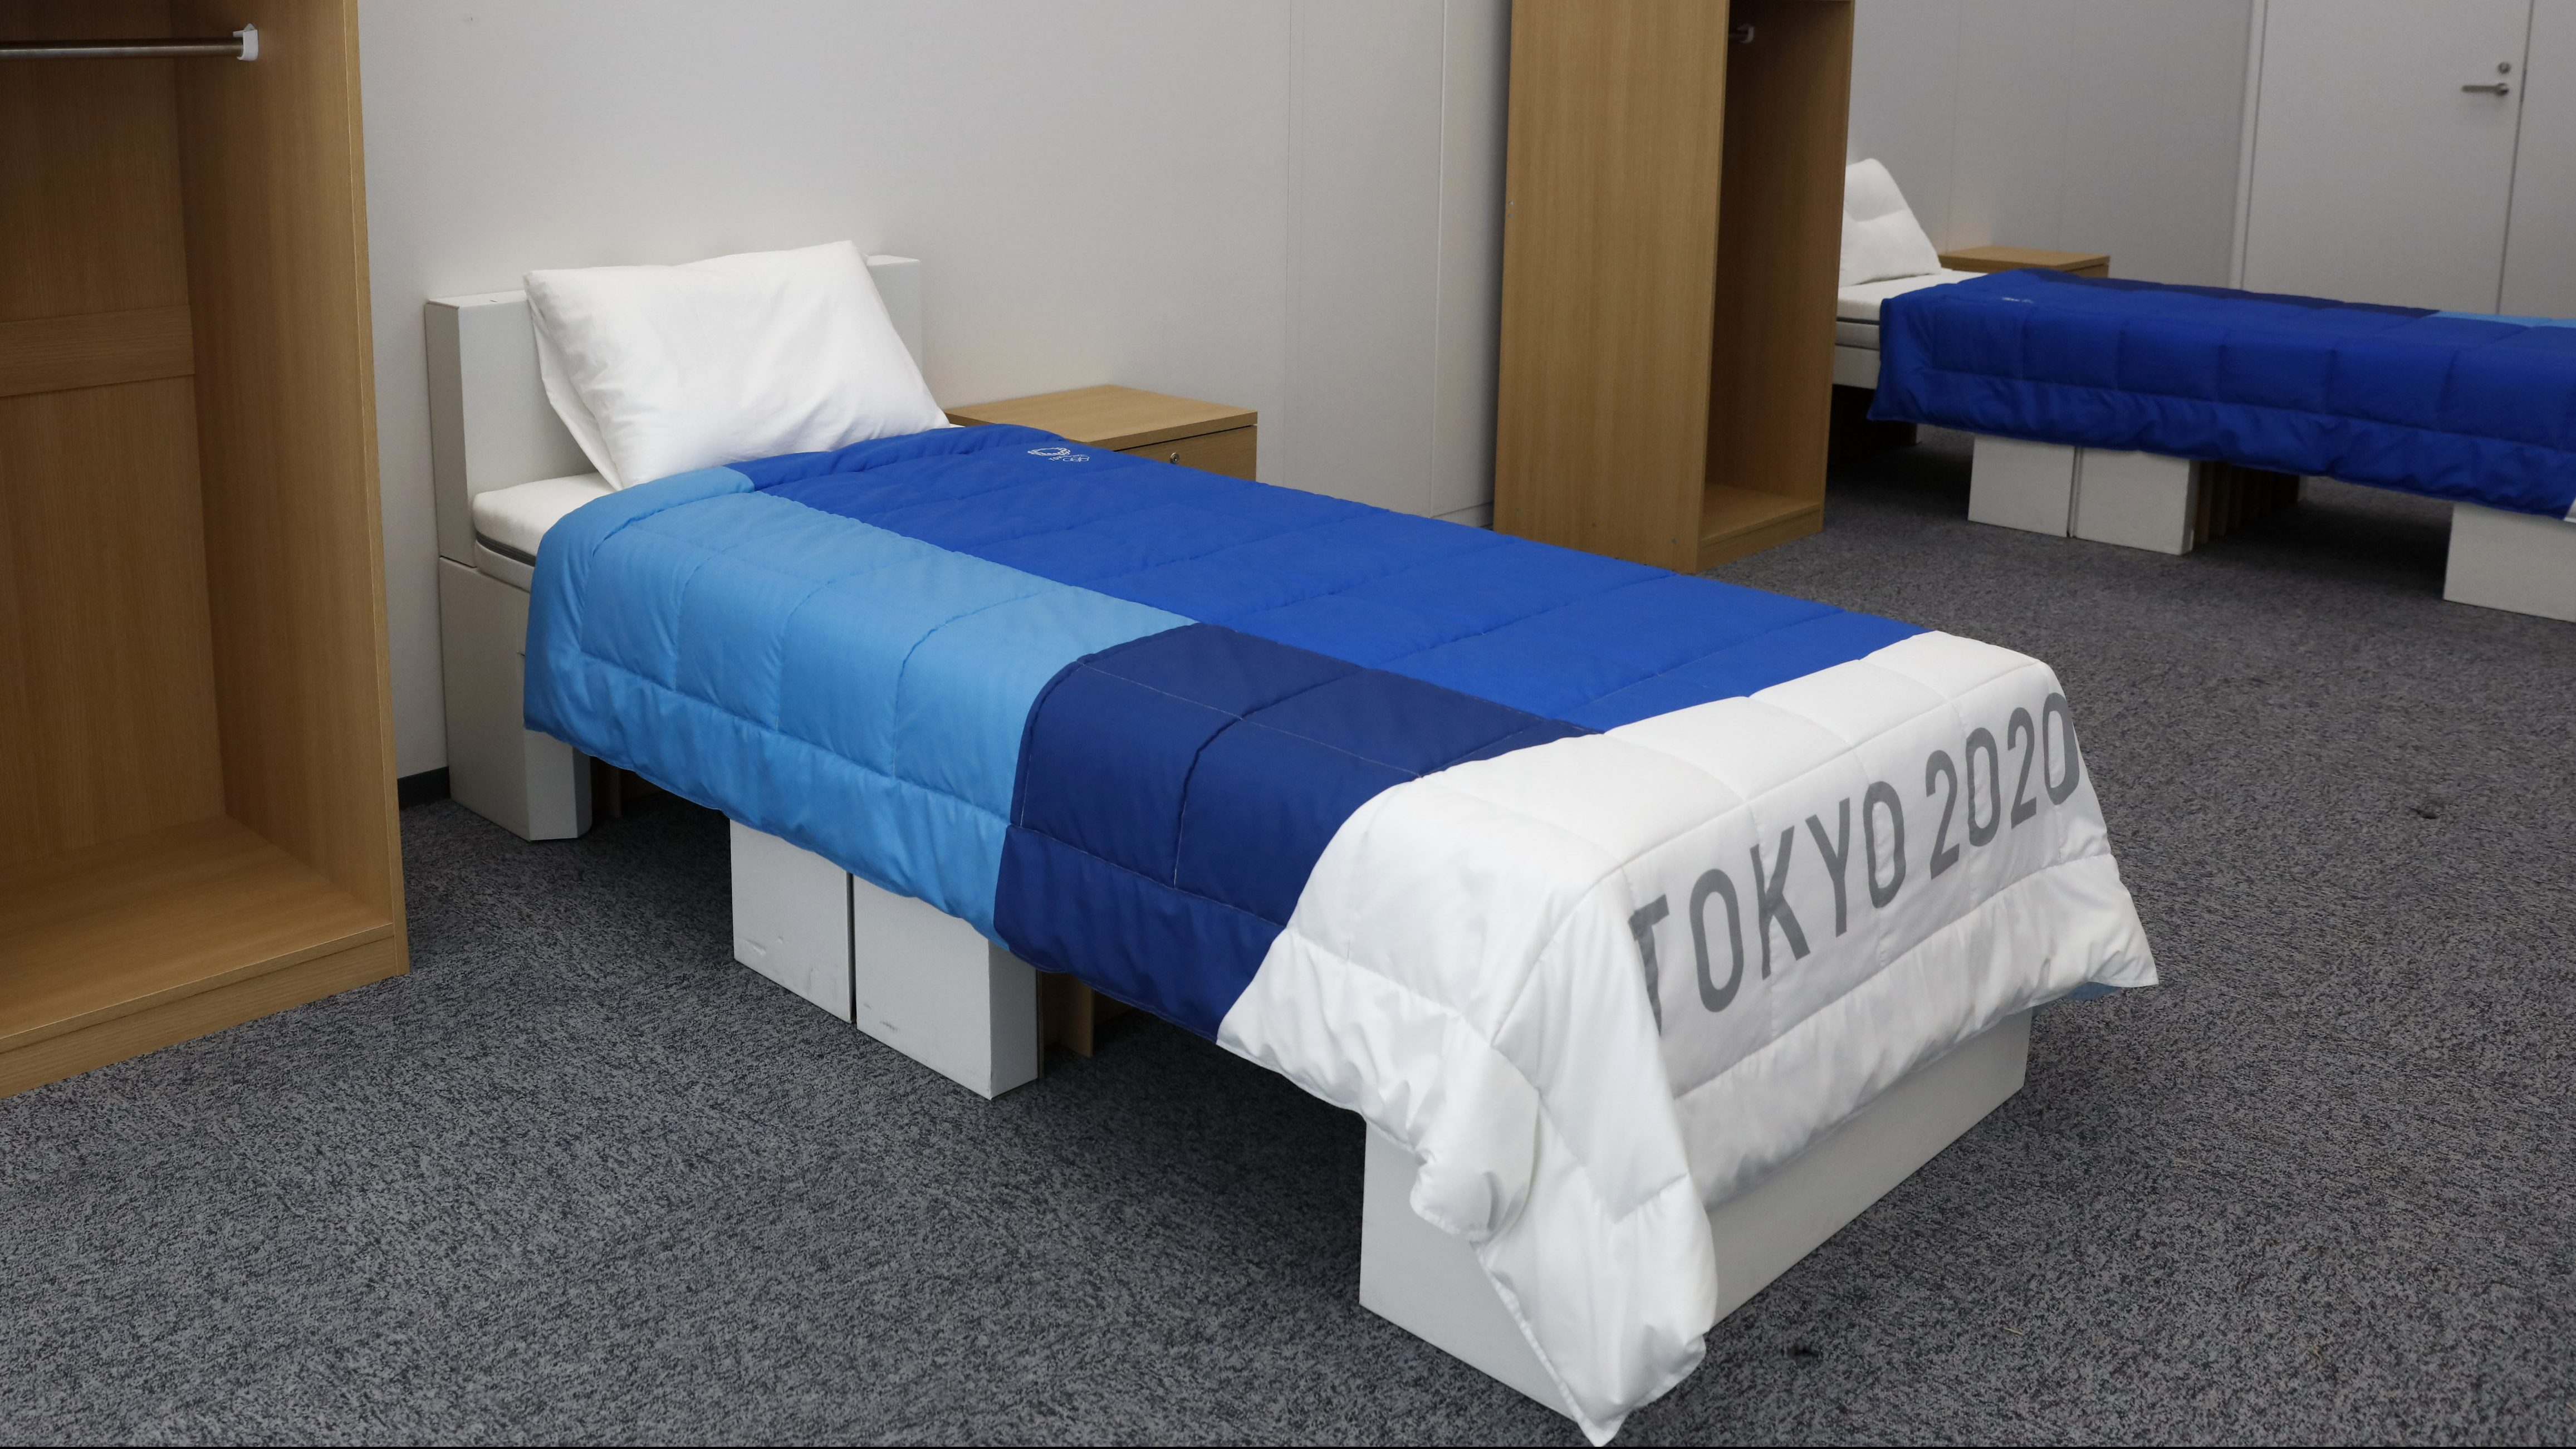 Cardboard bed frames for Tokyo Olympic athletes